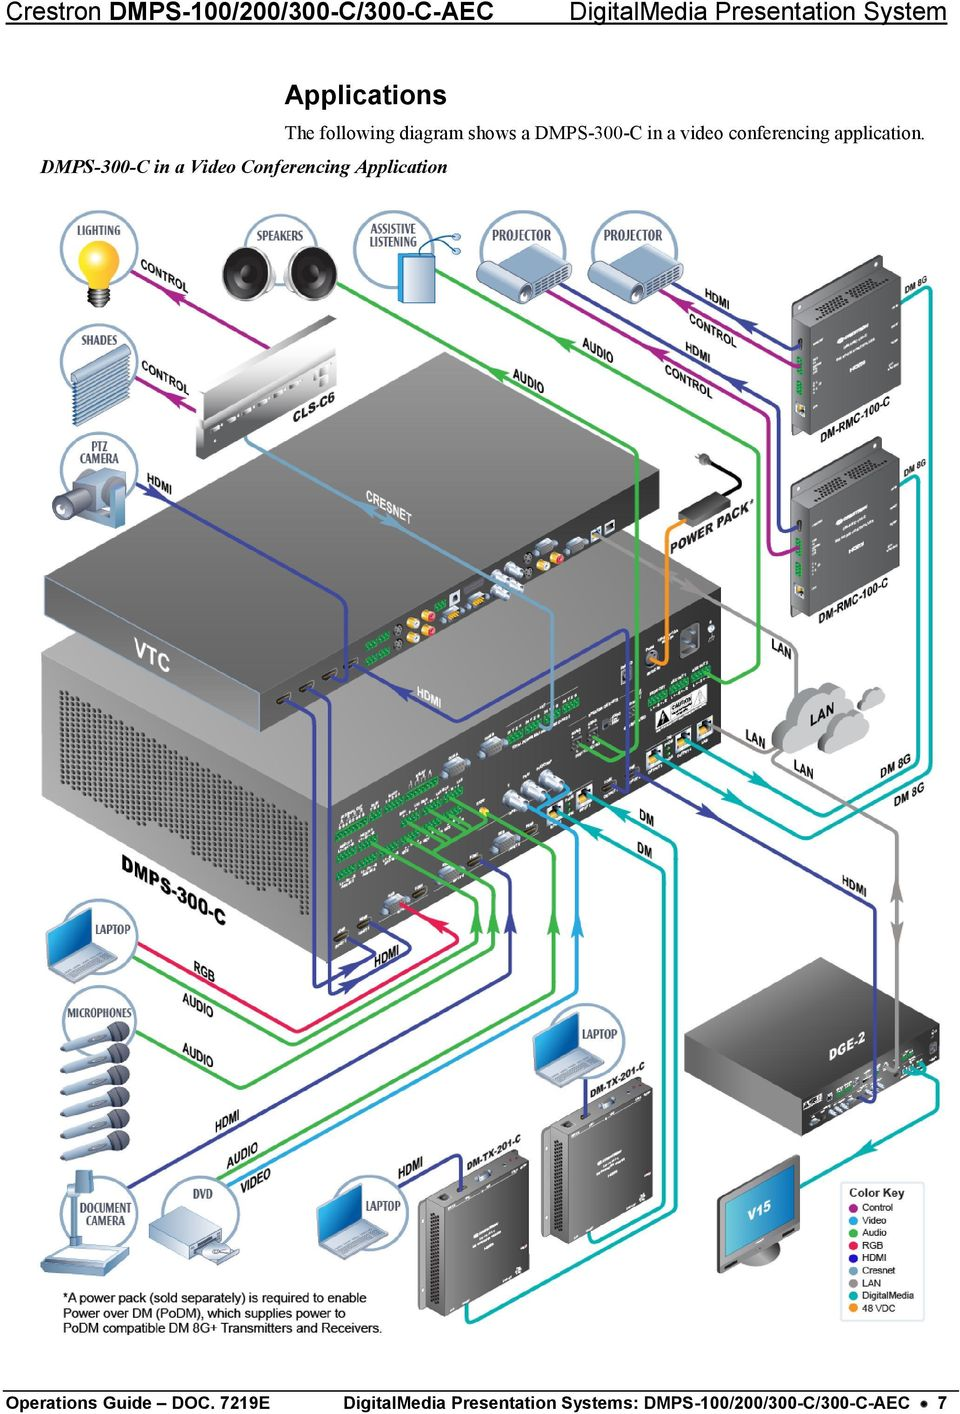 medium resolution of diagram shows a dmps 300 c in a video conferencing application